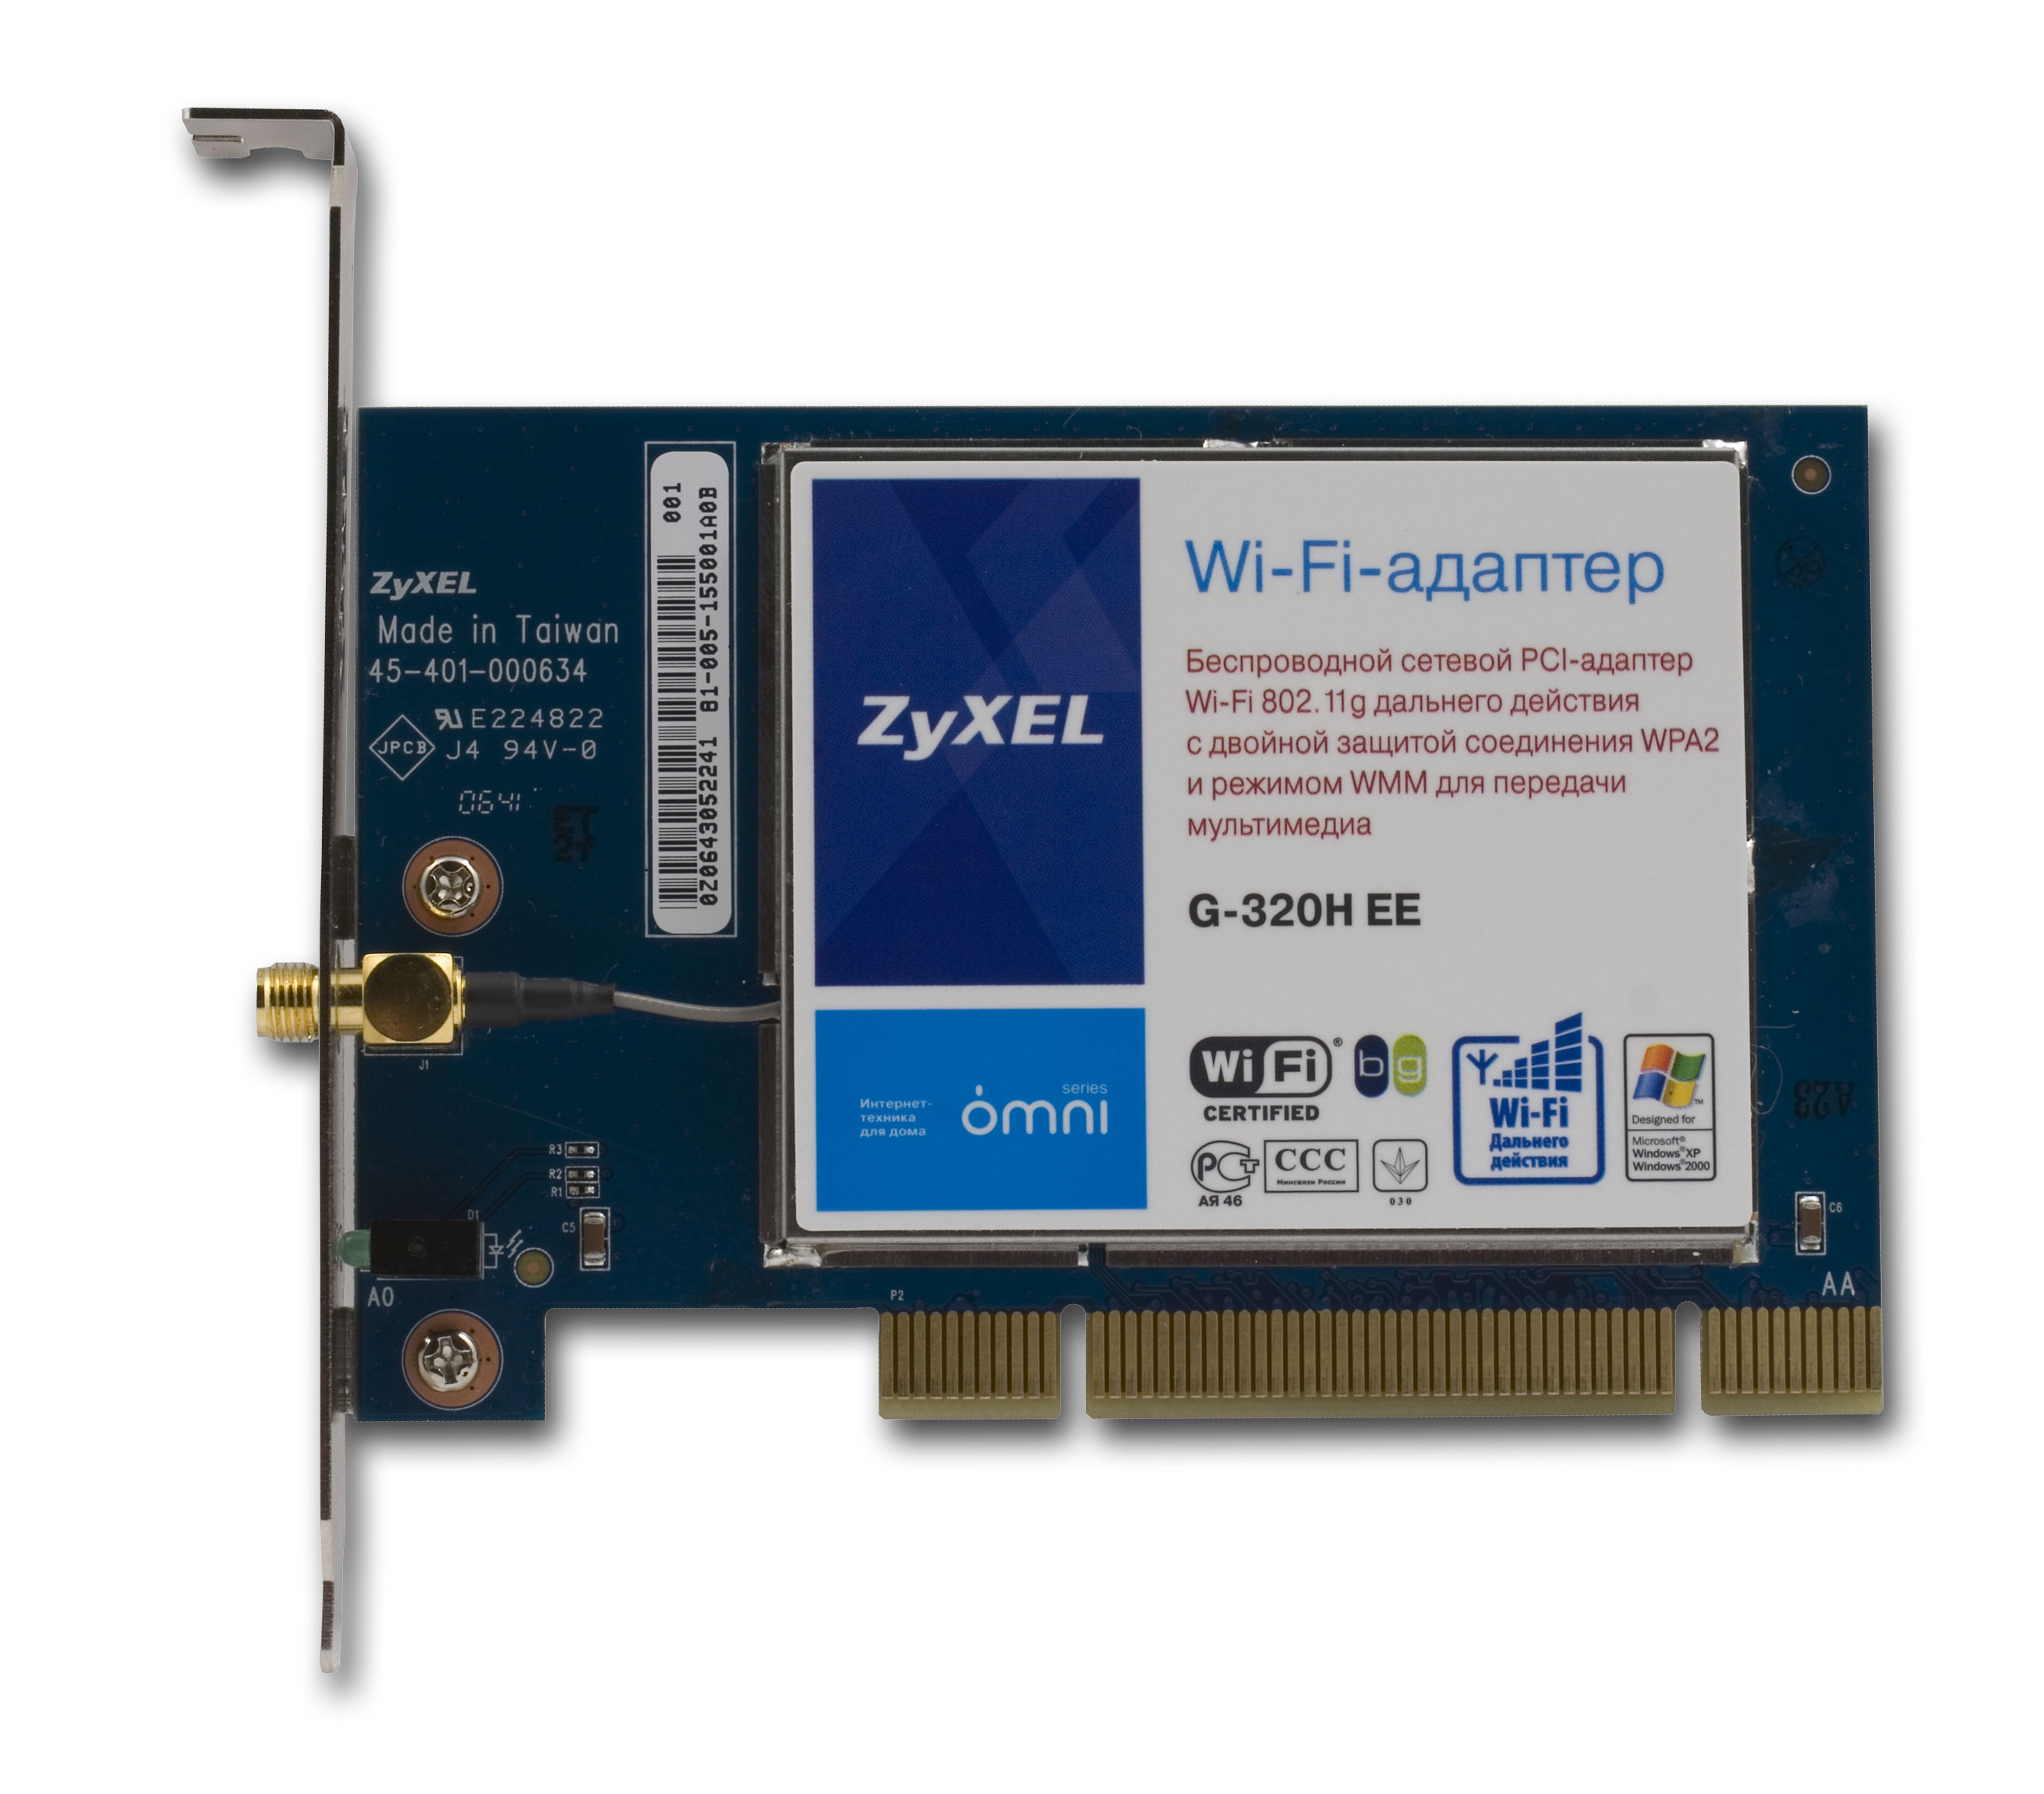 ZyXEL G-320H WLAN Drivers for PC